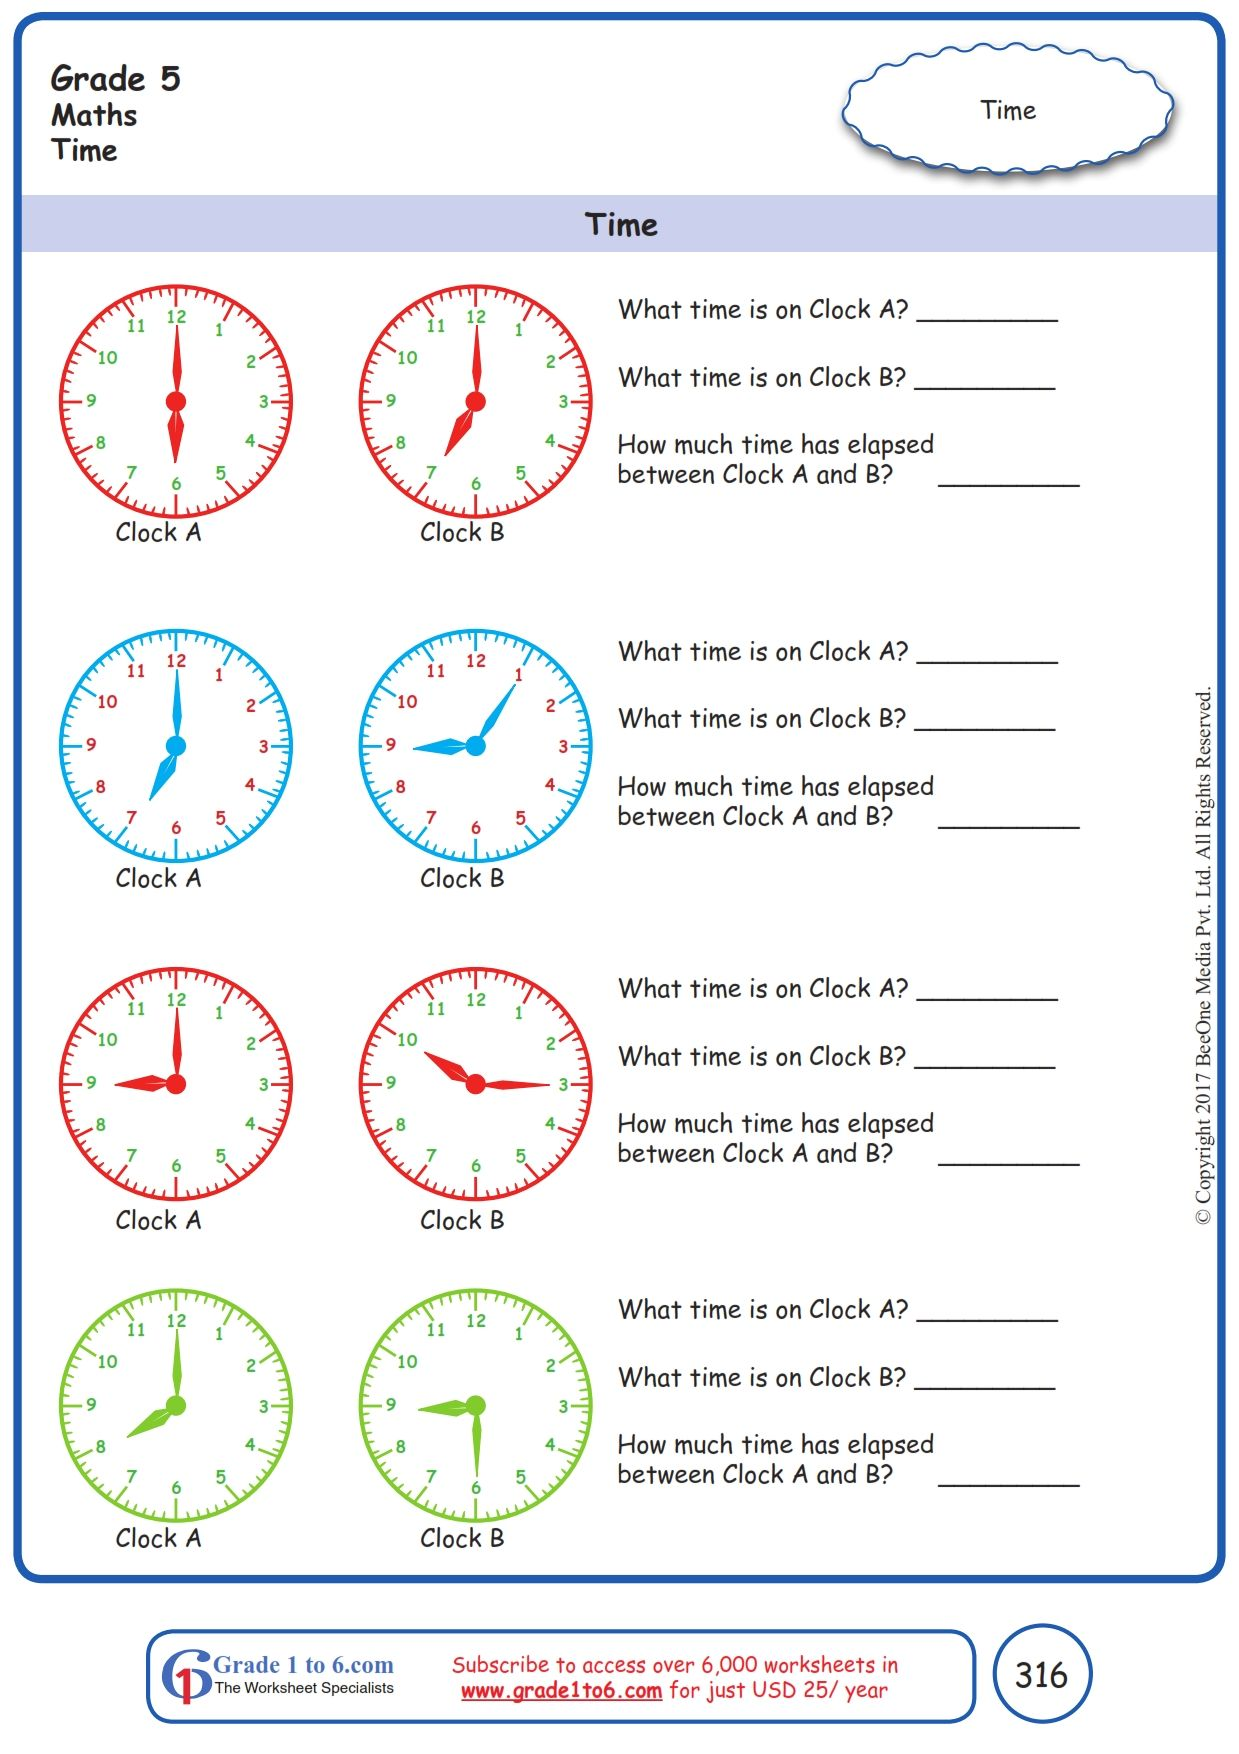 Worksheet Grade 5 Math Time Kindergarten Worksheets Free Math Worksheets Kindergarten Worksheets Printable